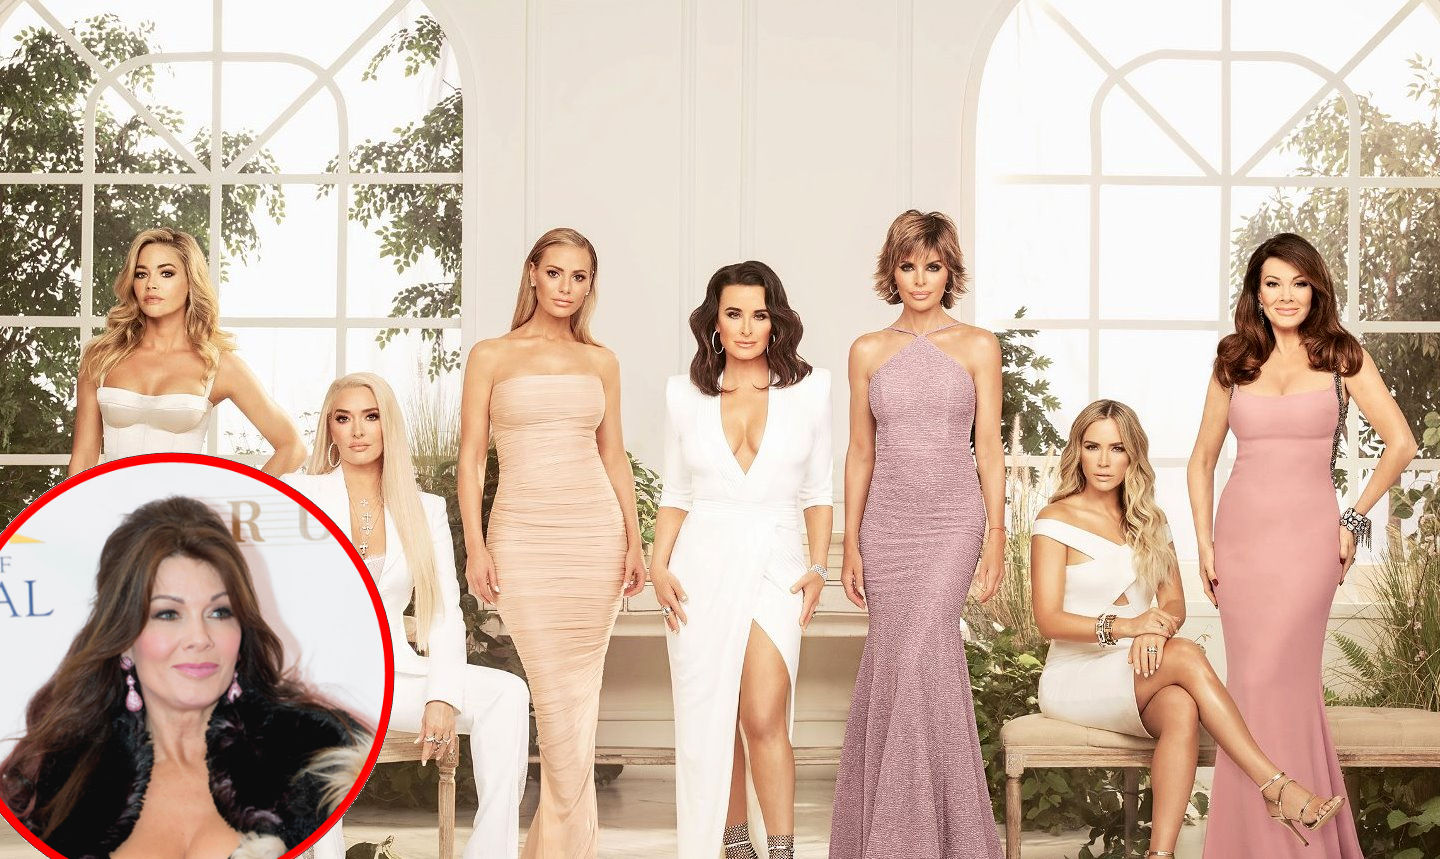 RHOBH Cast accuse Lisa Vanderpump of leaking story about Dorit and Lying